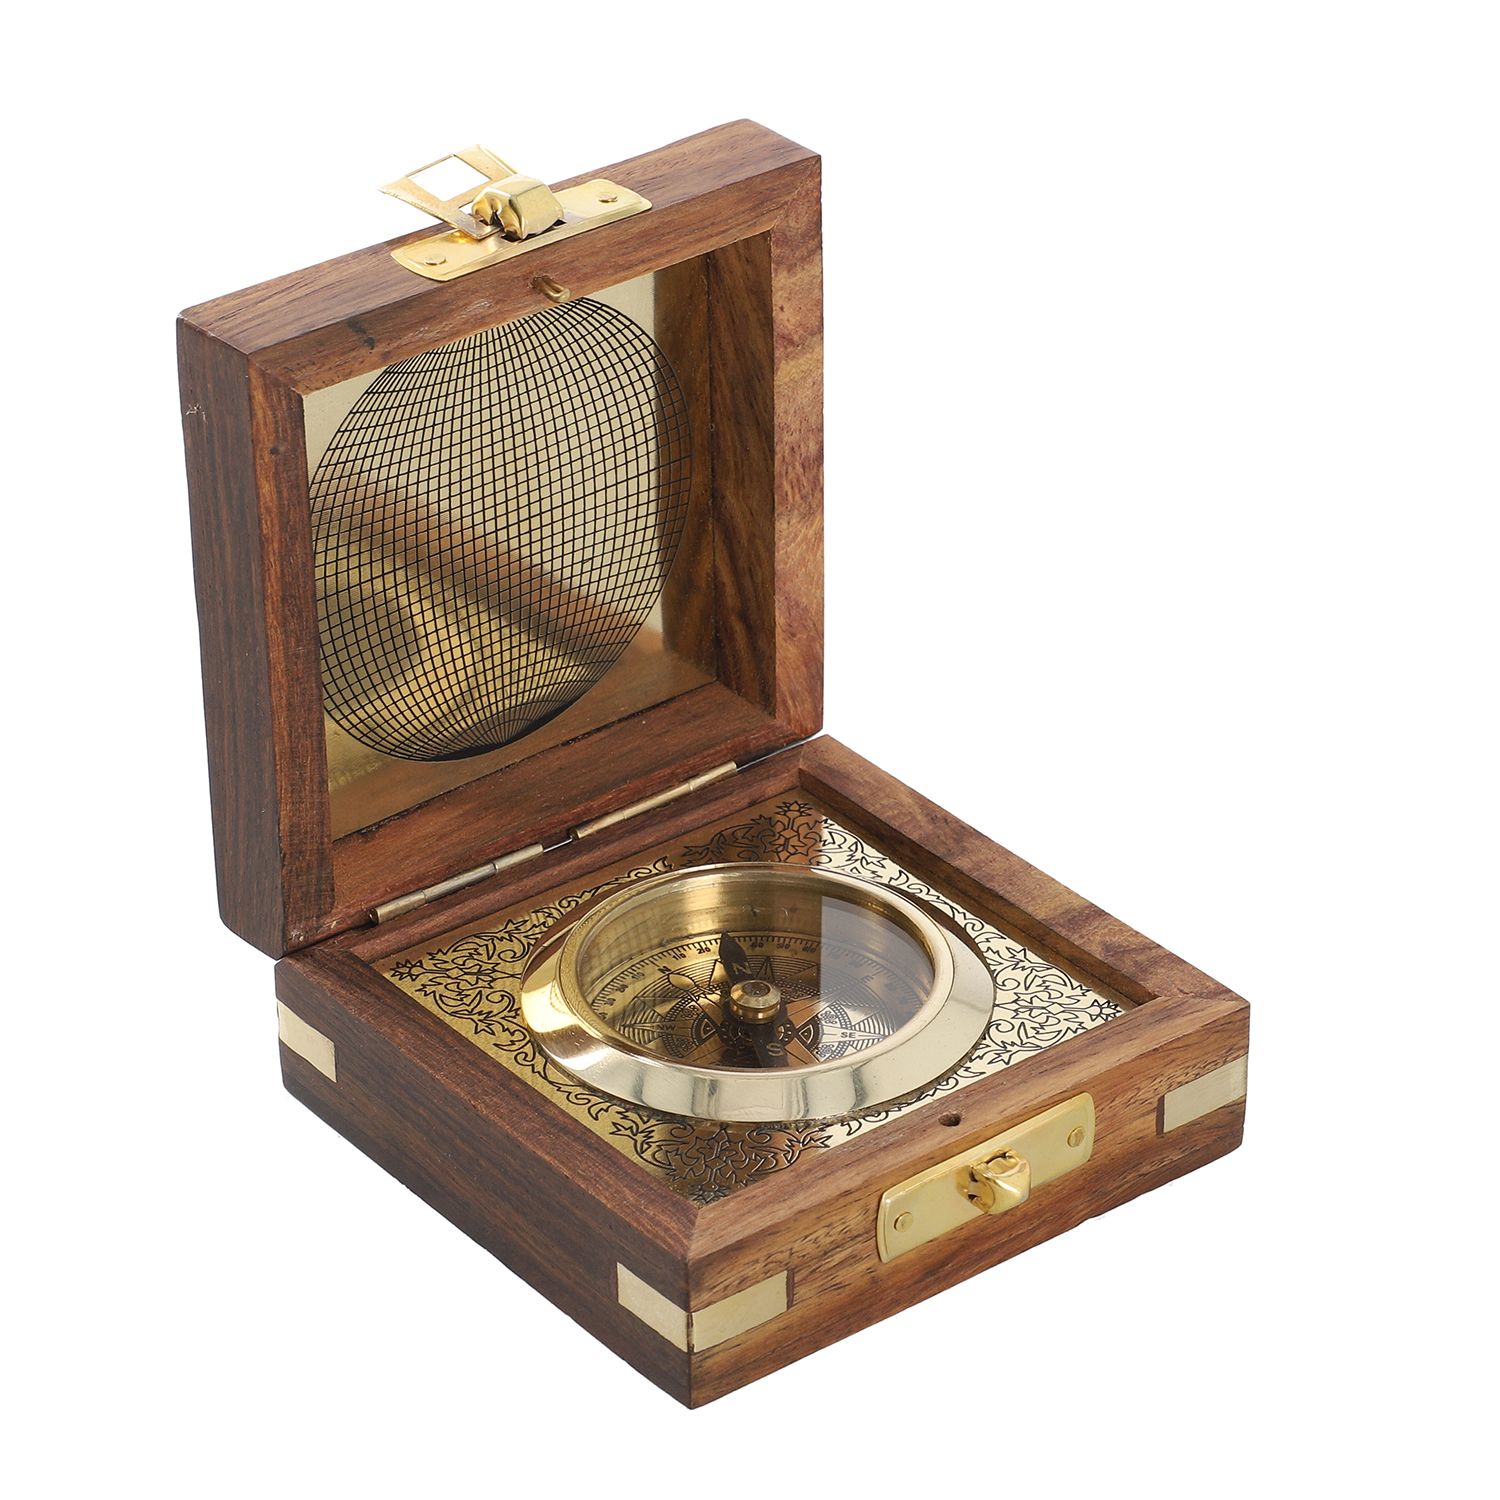 Maritime Maritime Compasses Handcrafted Wooden Box W/built In Goldtone Compass Attractive And Durable